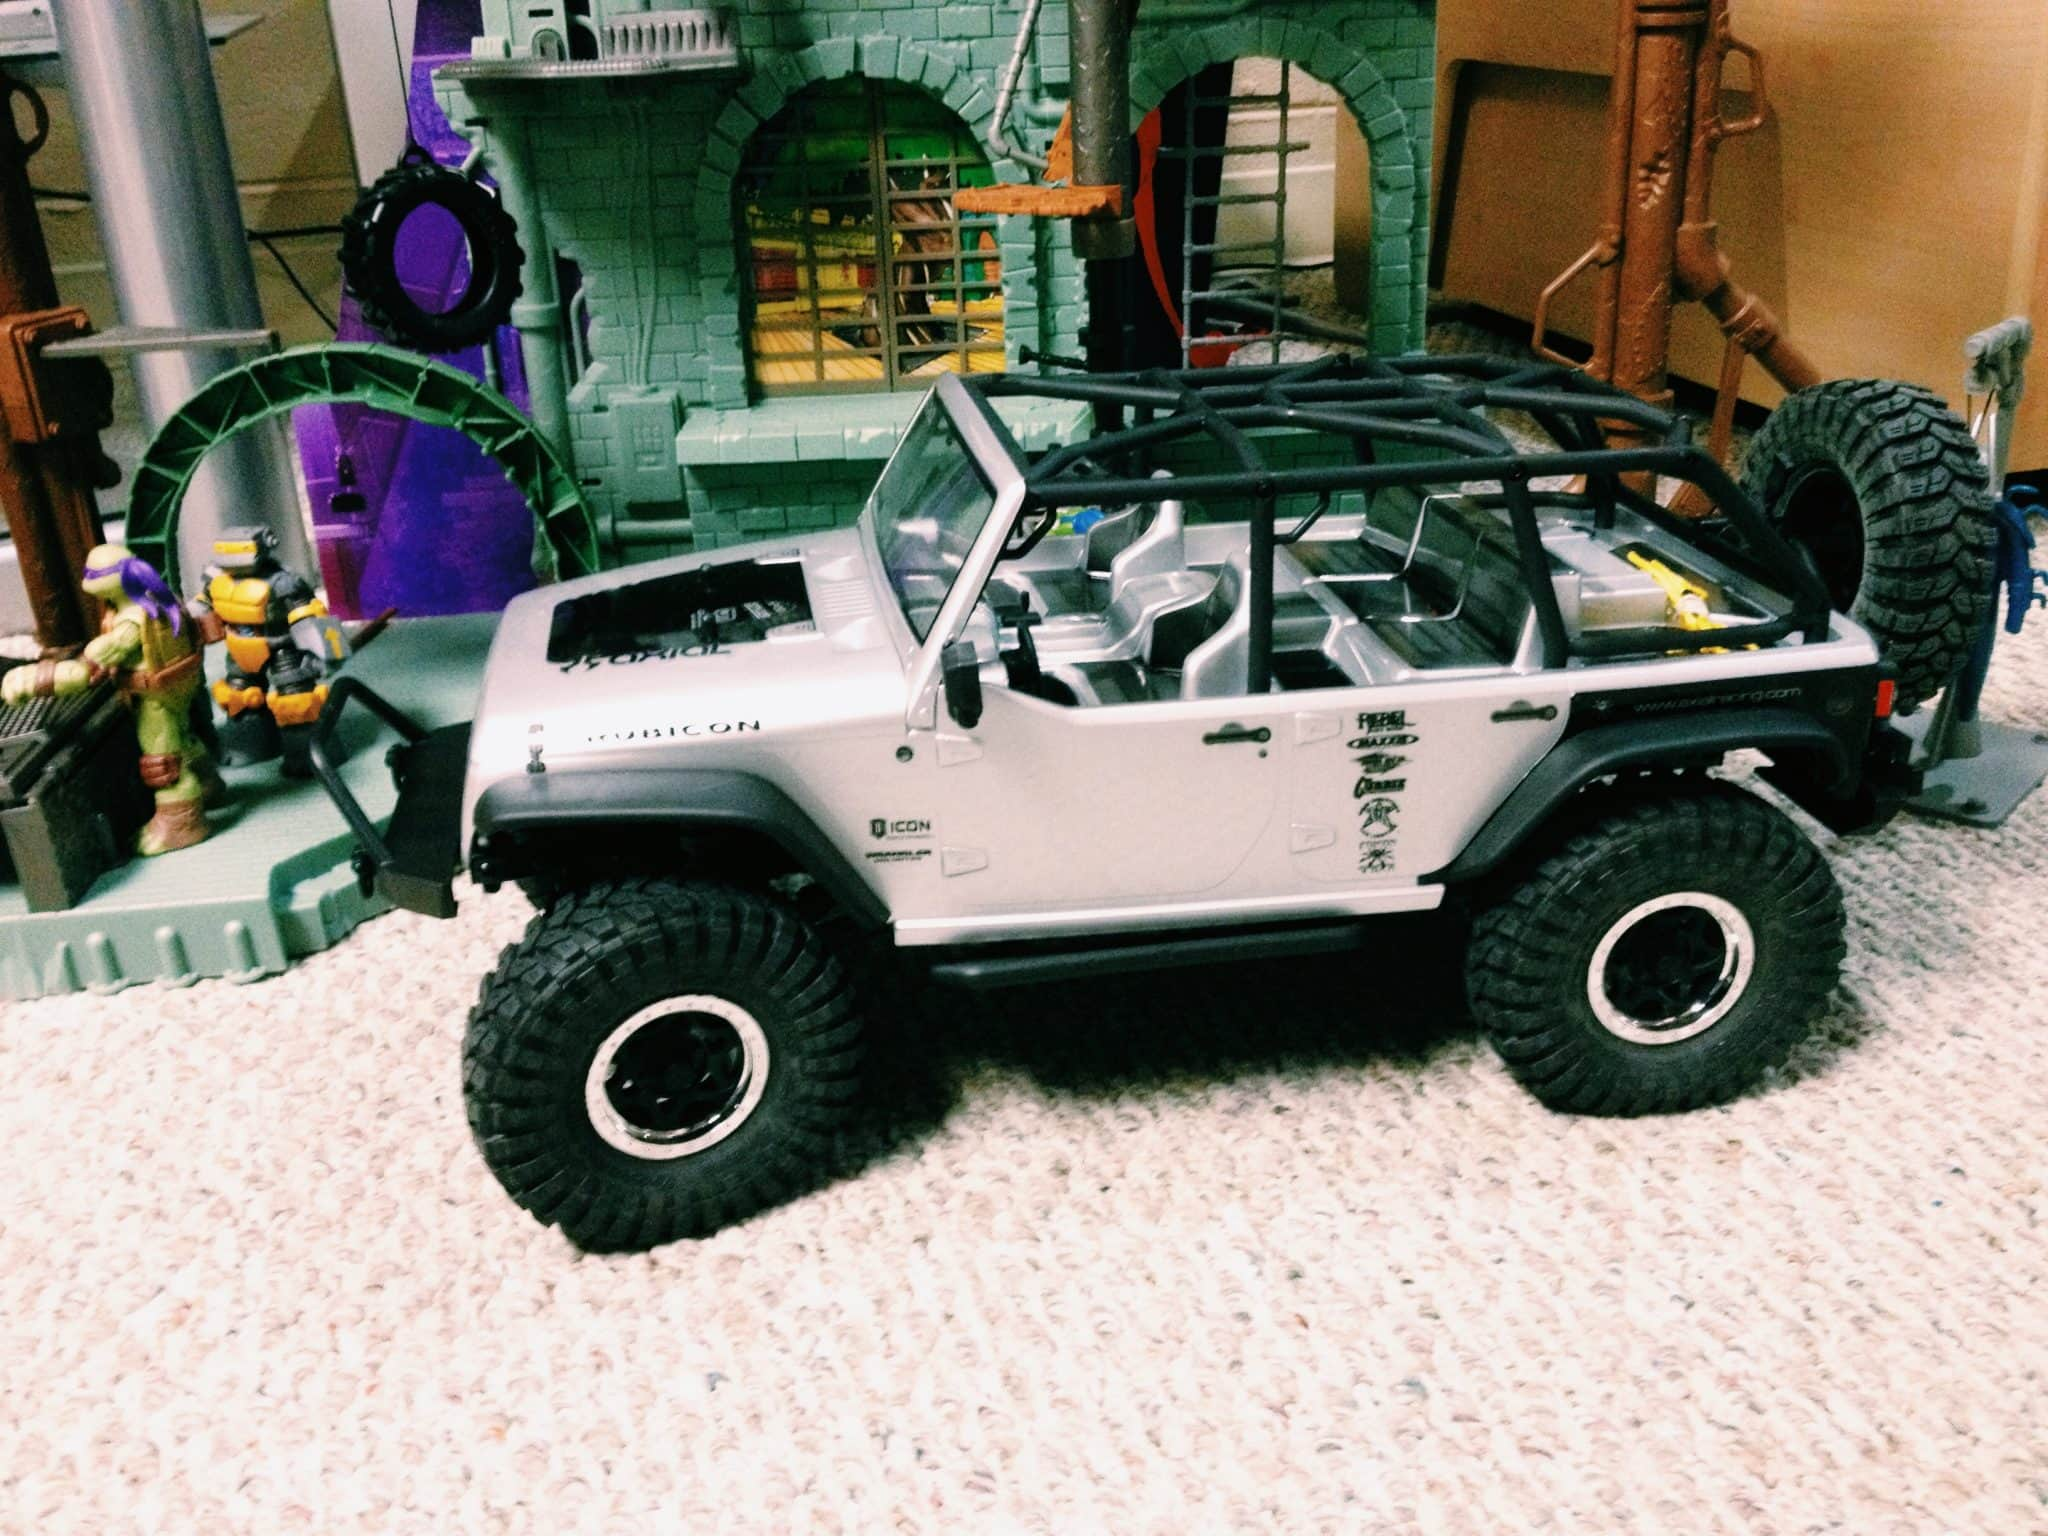 Axial SCX10 Jeep Wrangler Unlimited Rubicon RTR – First Impressions